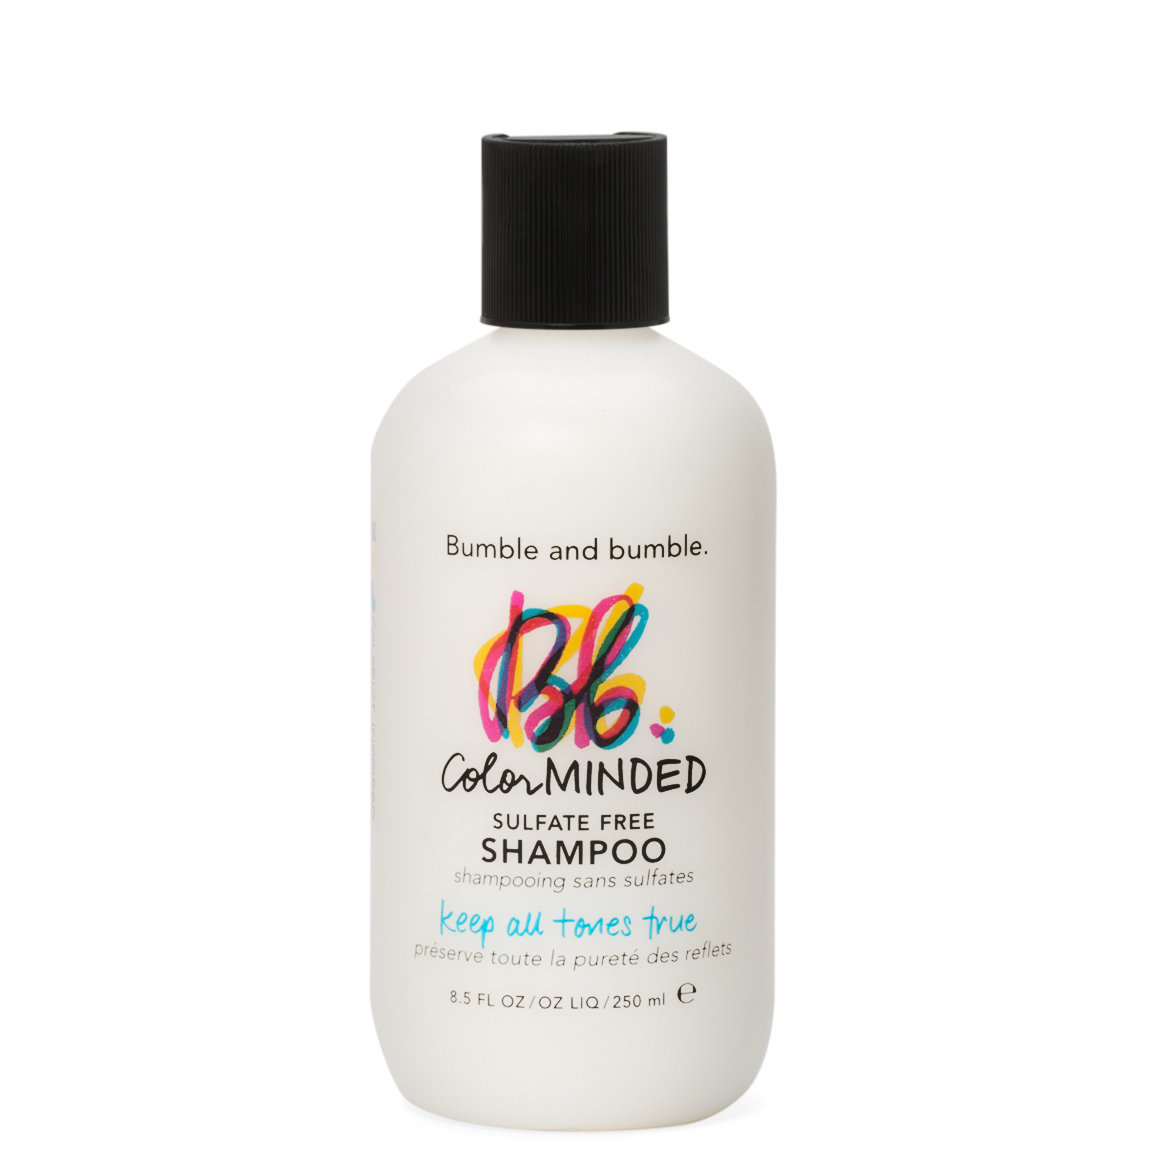 Bumble and bumble. Color Minded Shampoo product smear.